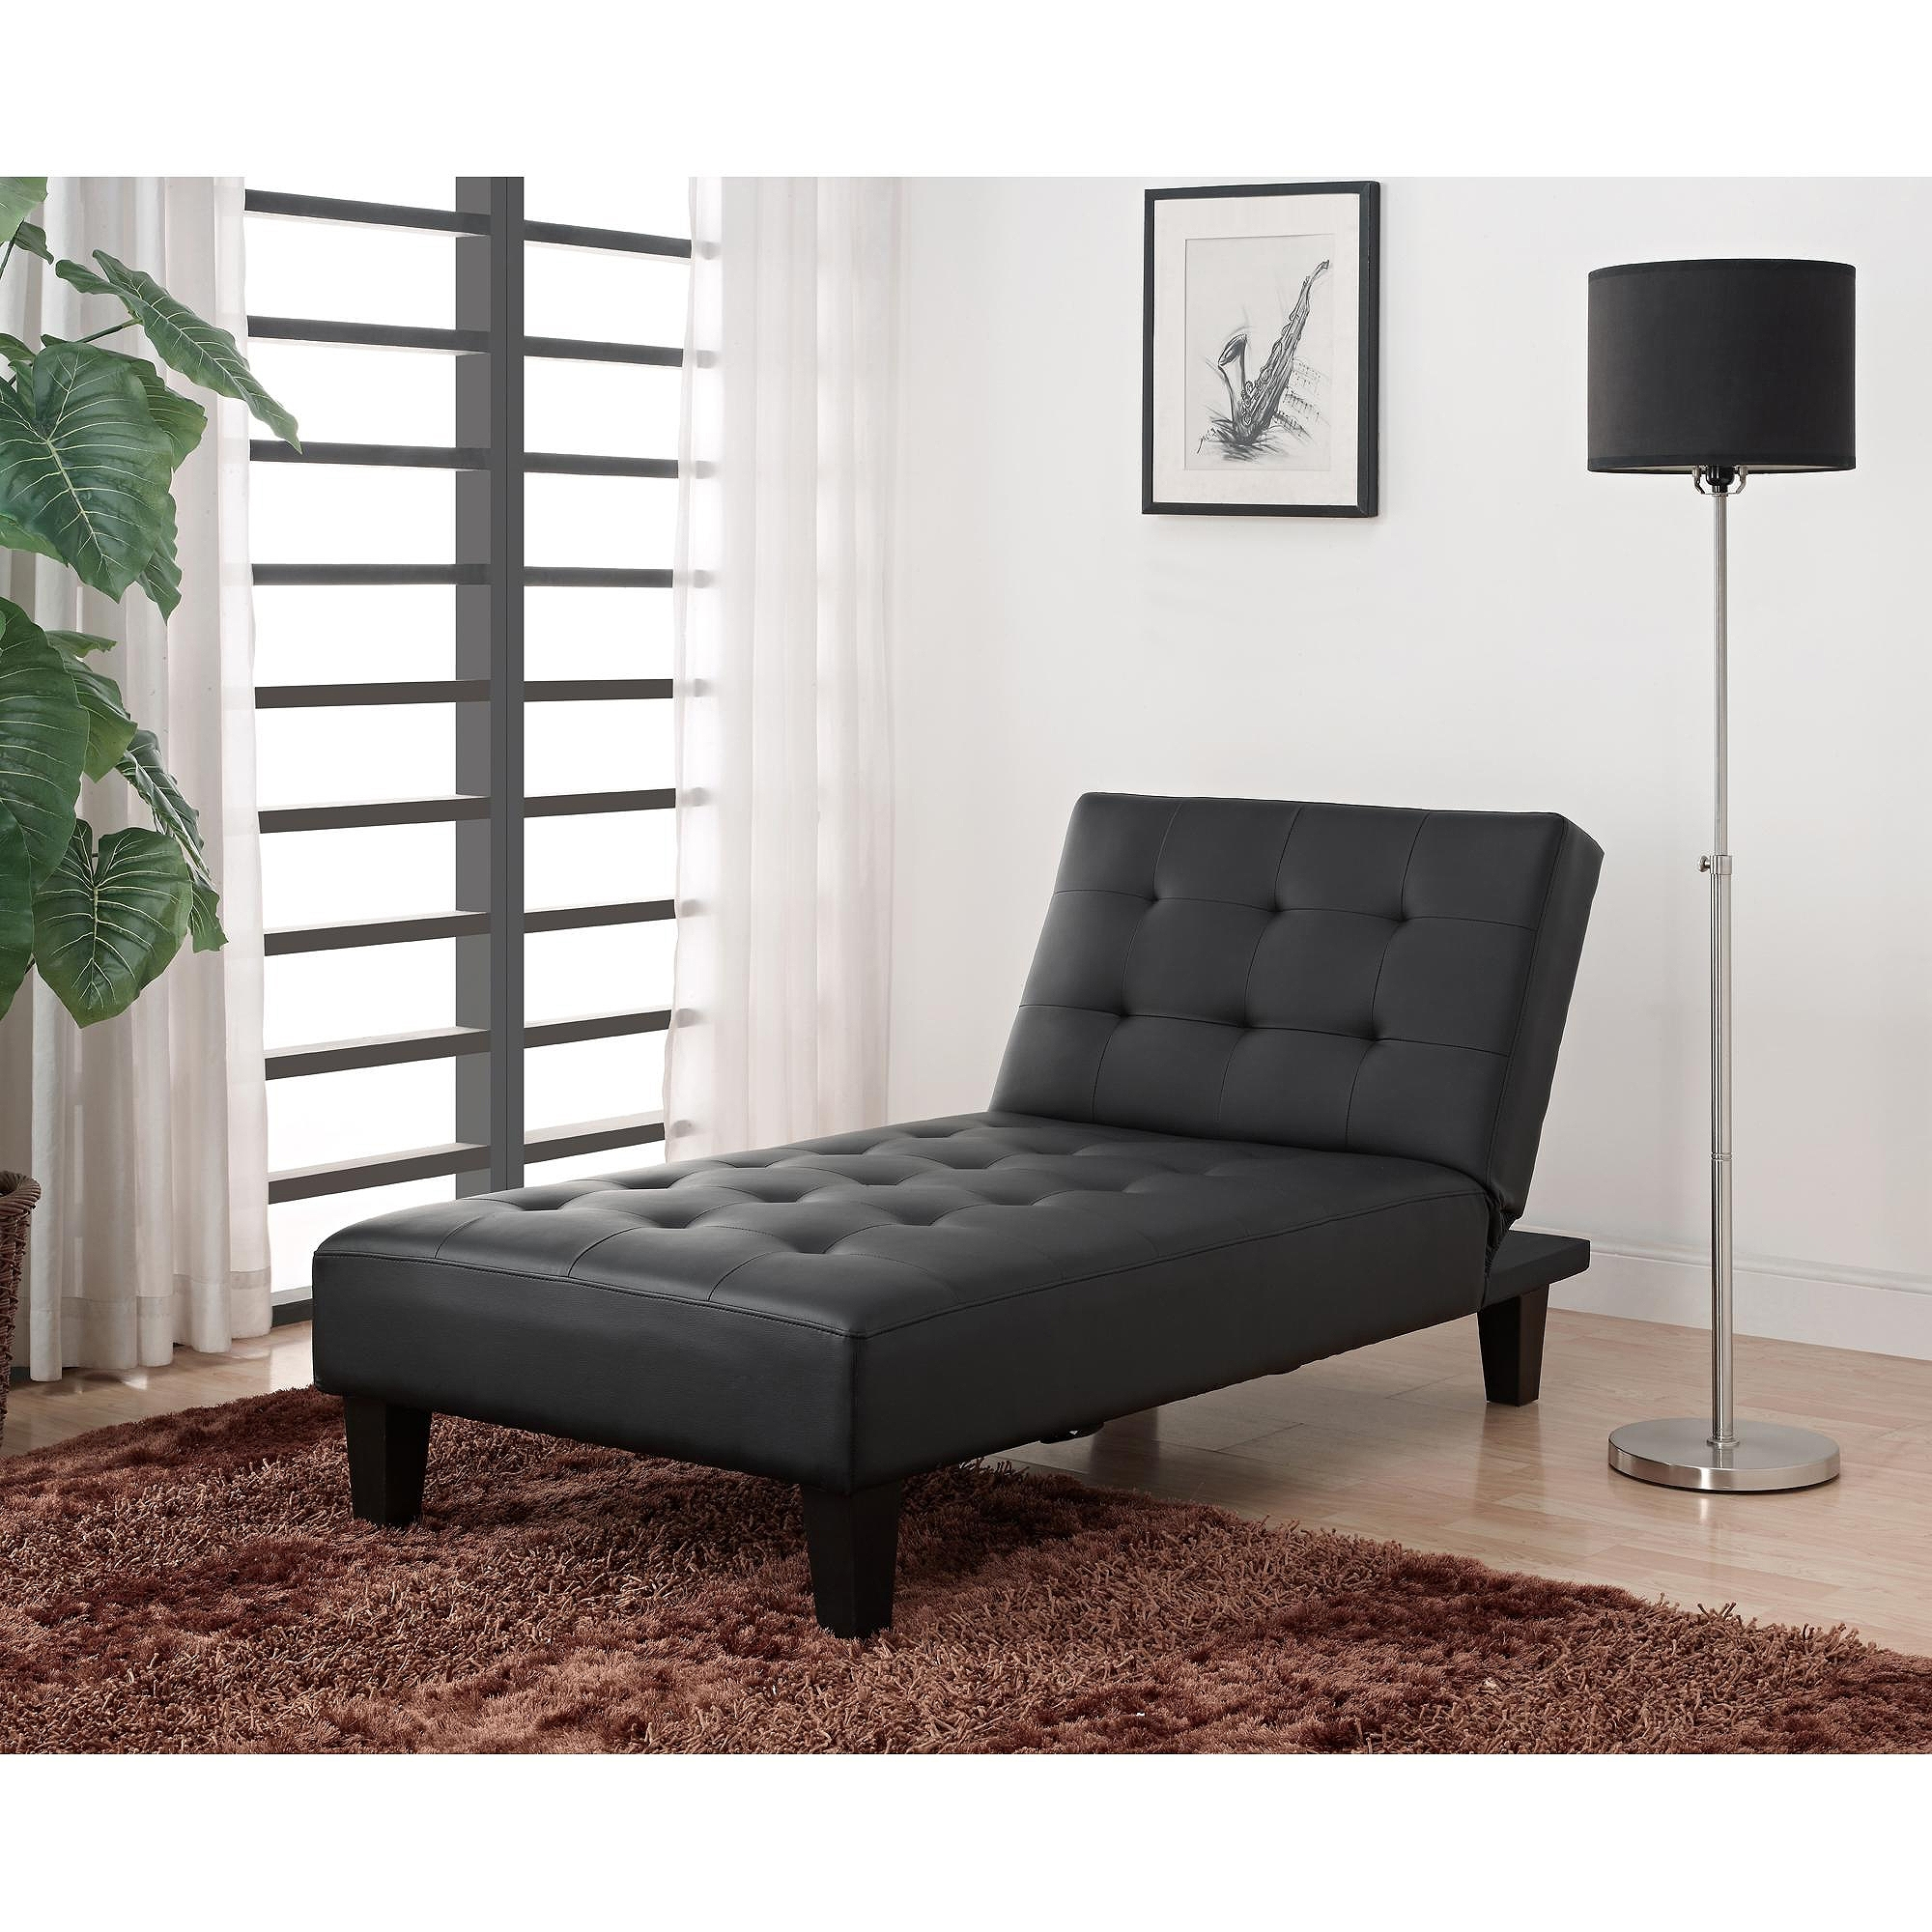 Preferred Futons With Chaise Lounge In Julia Futon Chaise Lounger, Black – Walmart (View 1 of 15)